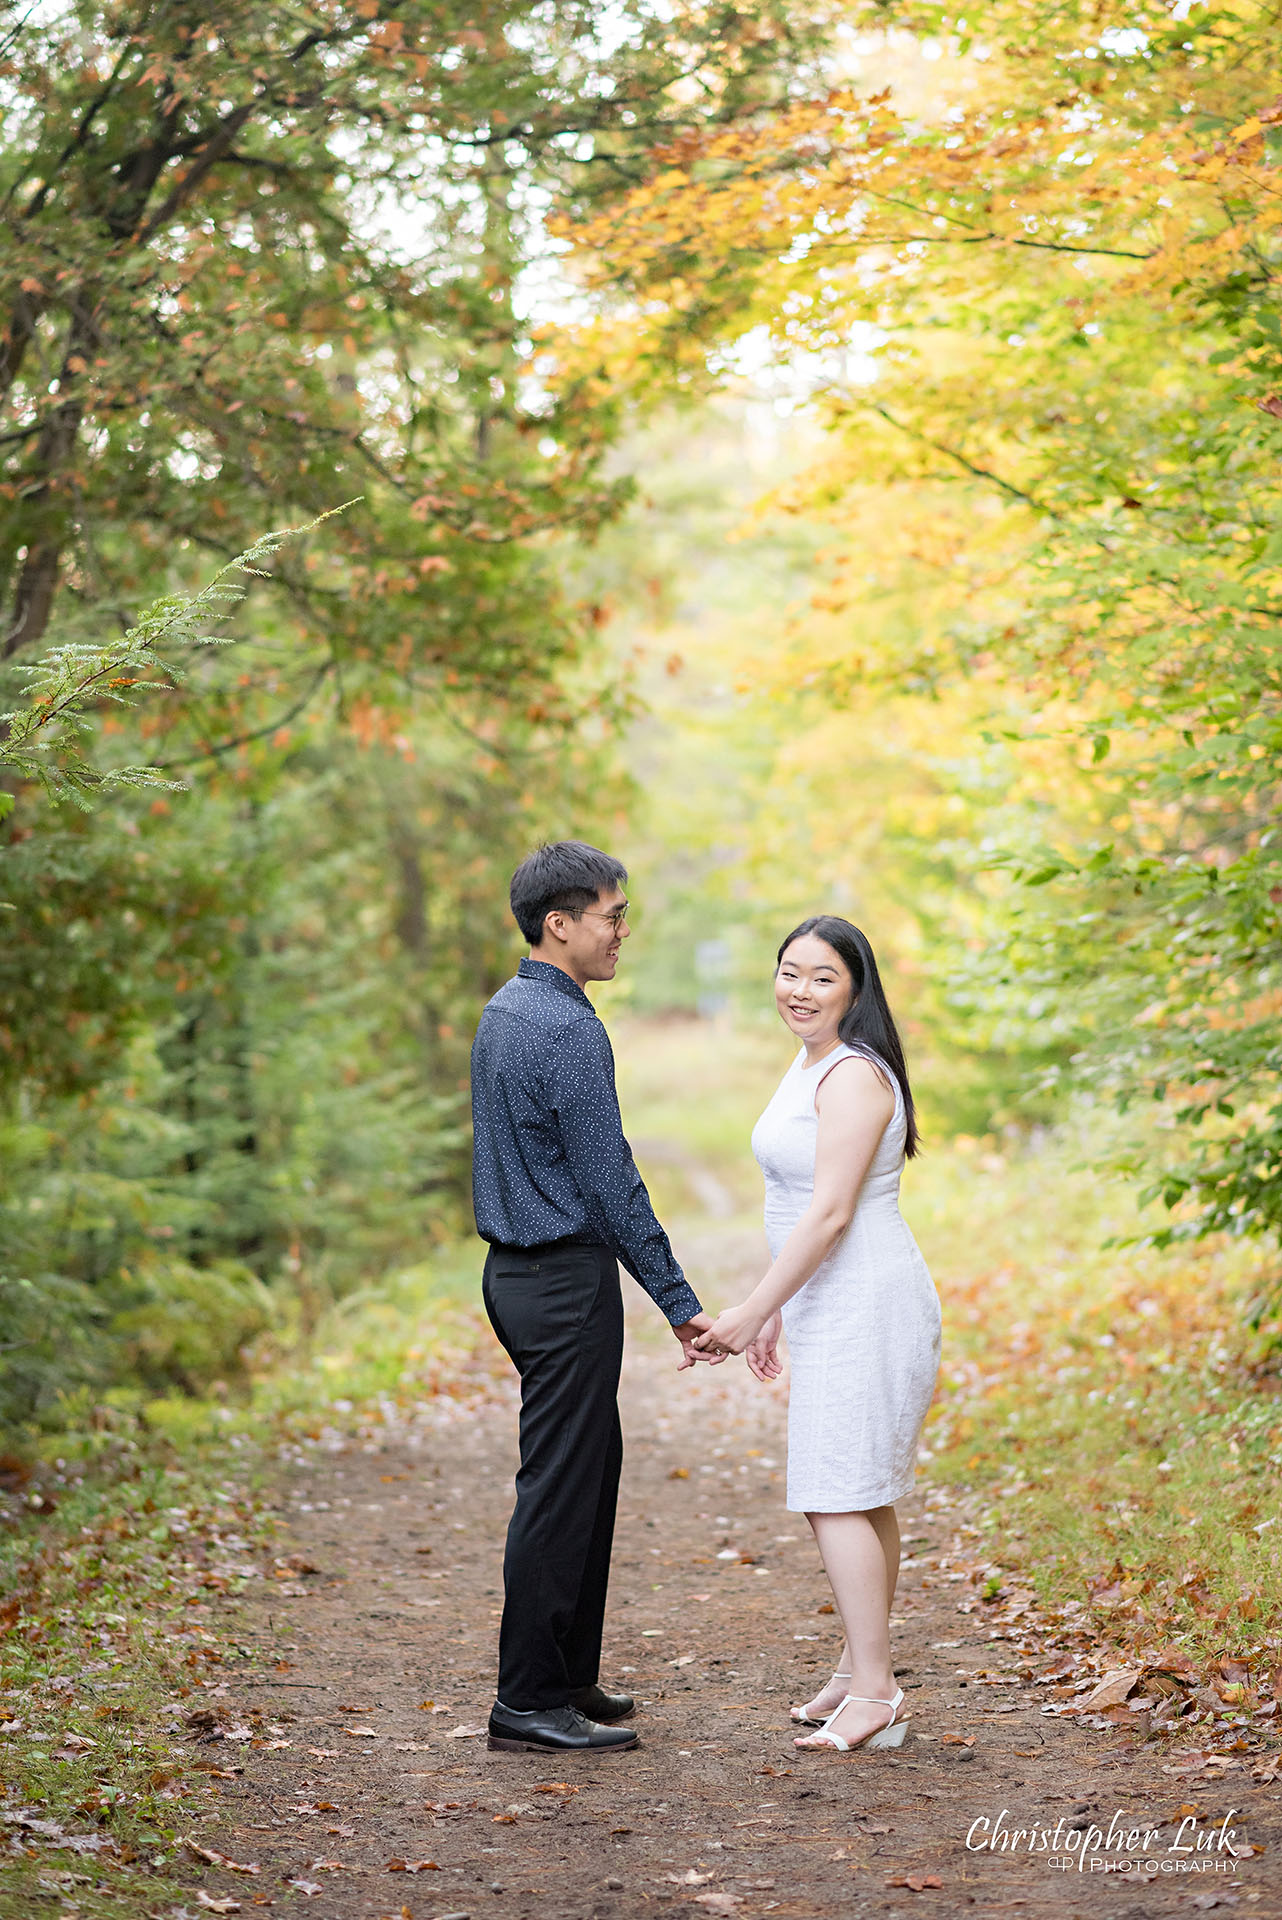 Christopher Luk Toronto Wedding Photographer Stouffville Forest Conservation Park Engagement Session Candid Natural Photojournalistic Bride Groom Walking Together Holding Hands Autumn Fall Leaves Smile Vertical